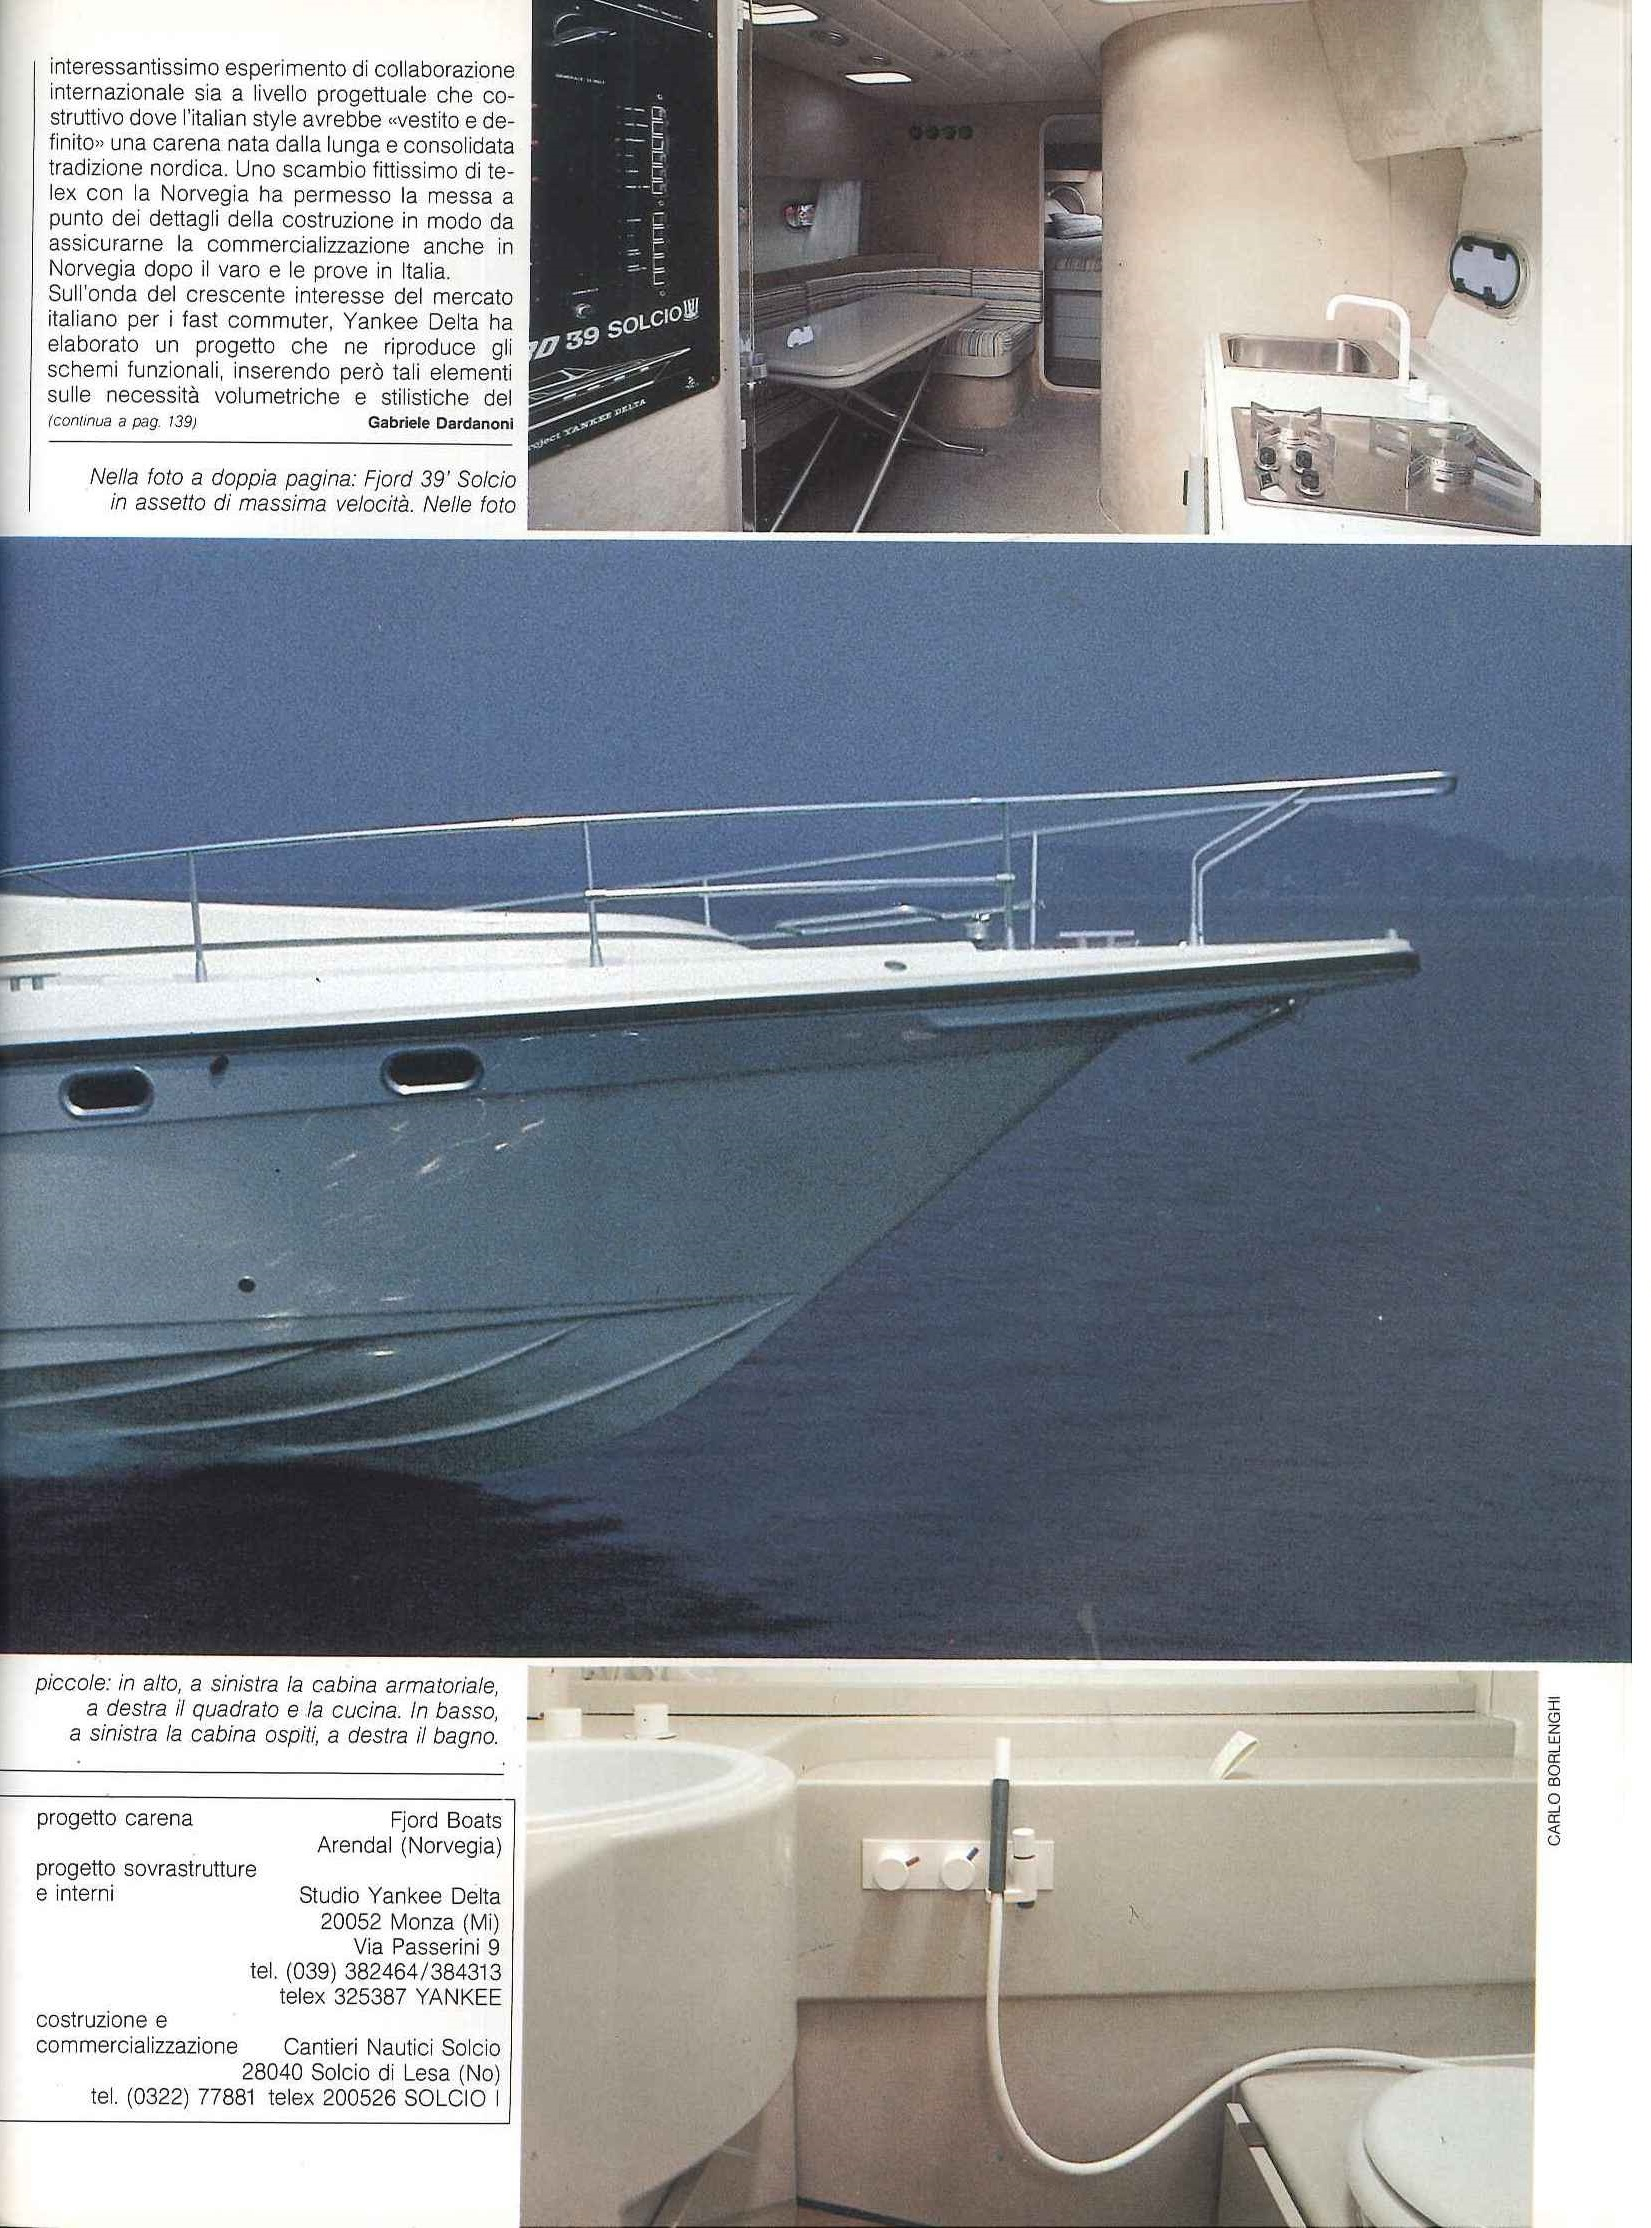 1986 09 PRESS FJORD 39 SOLCIO Uomo Mare n° 101 (27).jpg